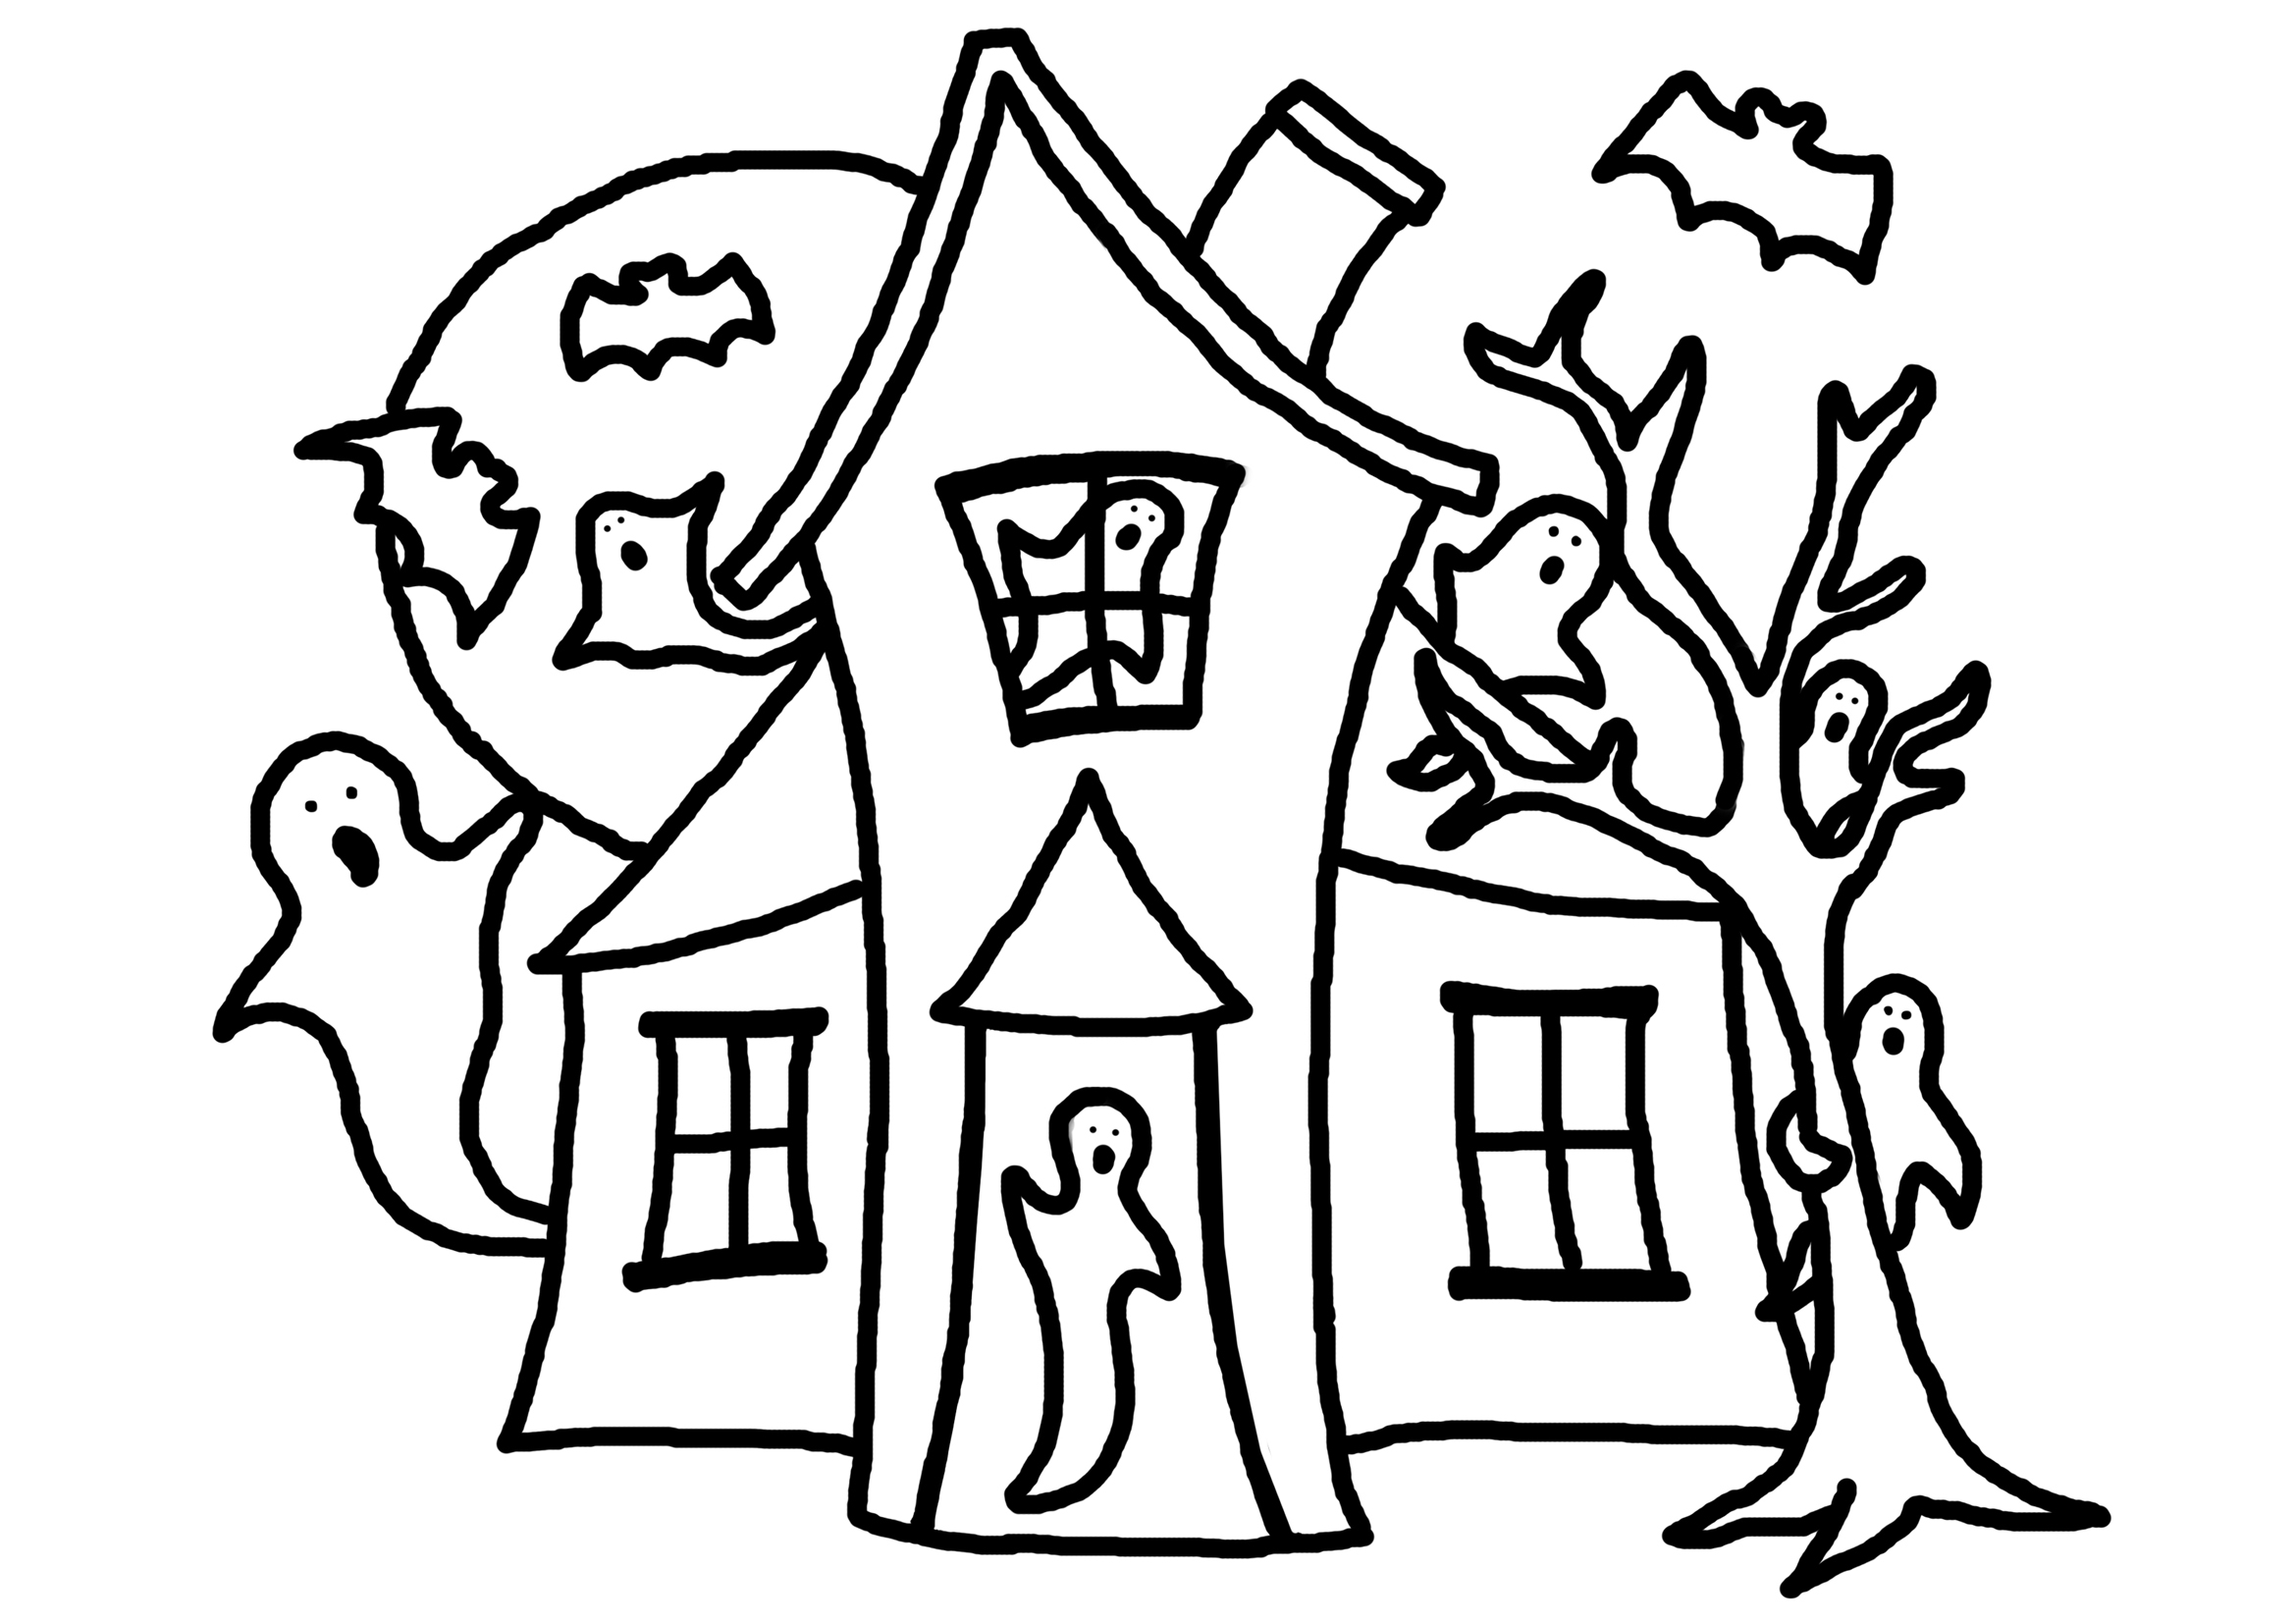 haunted house to color printable haunted house coloring pages for kids cool2bkids to color haunted house